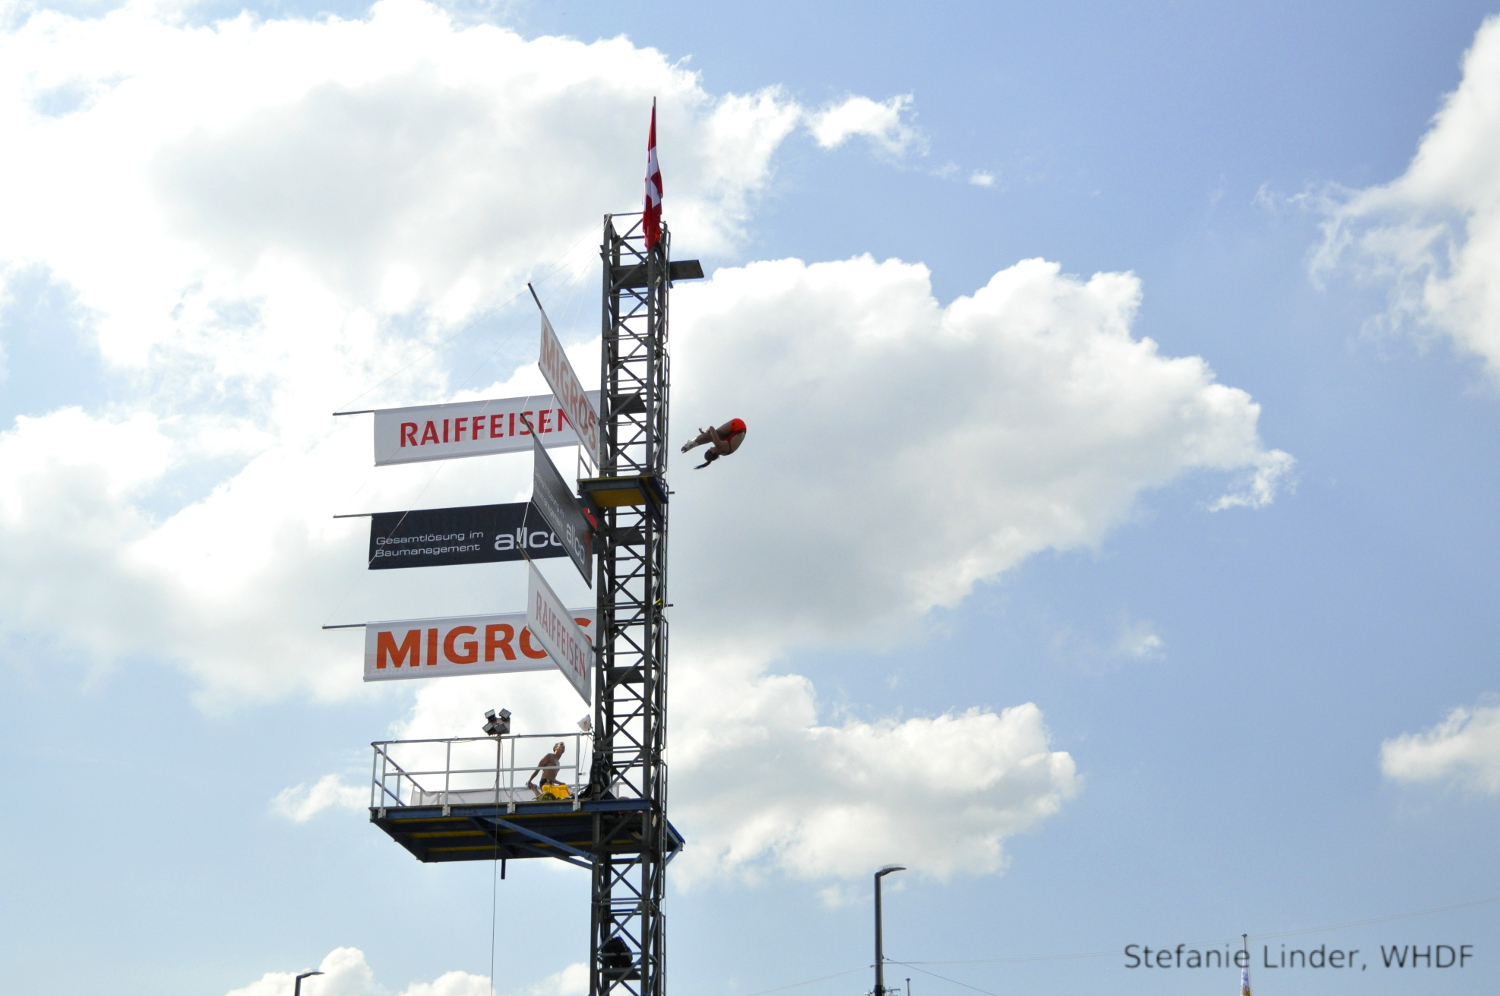 High Diving Show at Bellevue – Züri Fäscht 2019